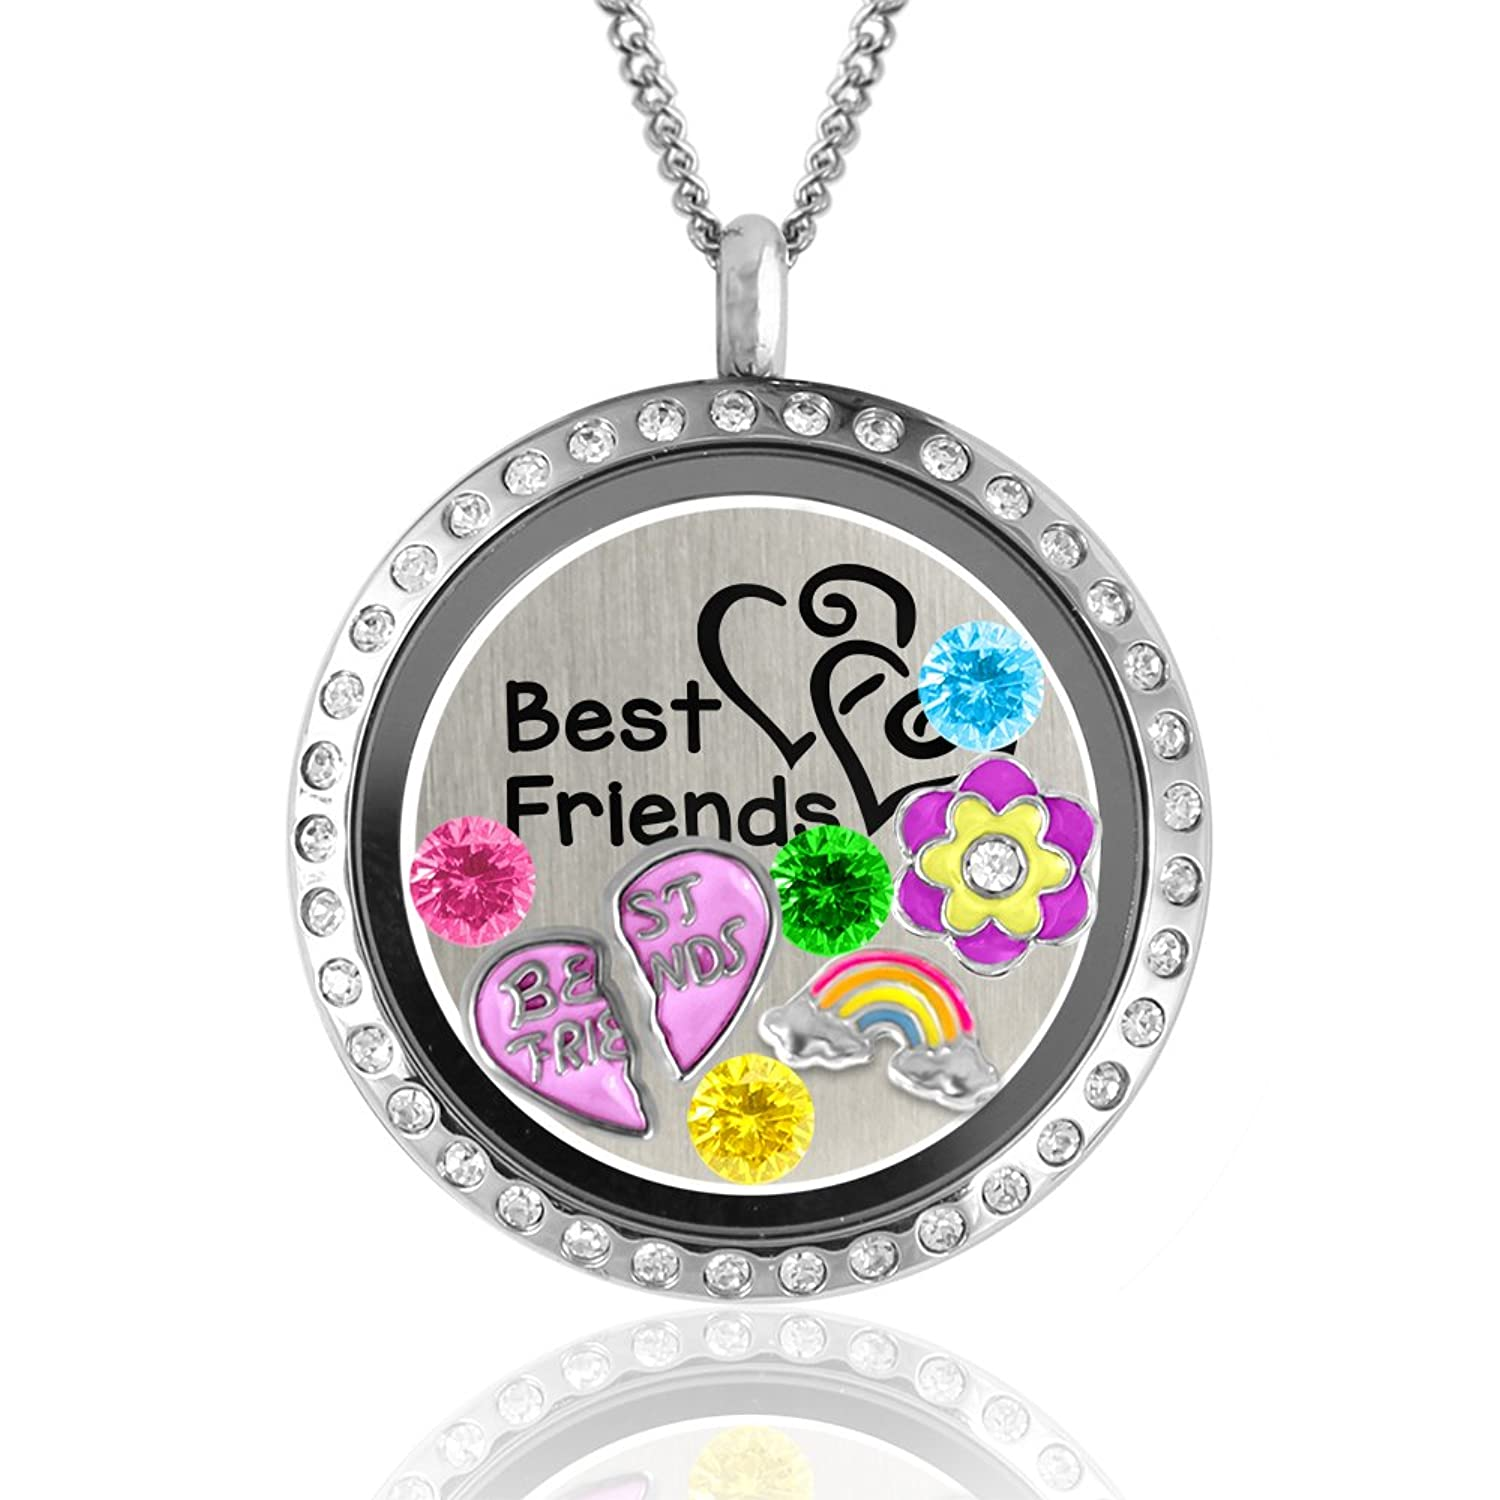 shopping heart best sukkhi friendship rhodium friends women pendant buy pendants for broken valentine gold chain with lovely and lockets in plated